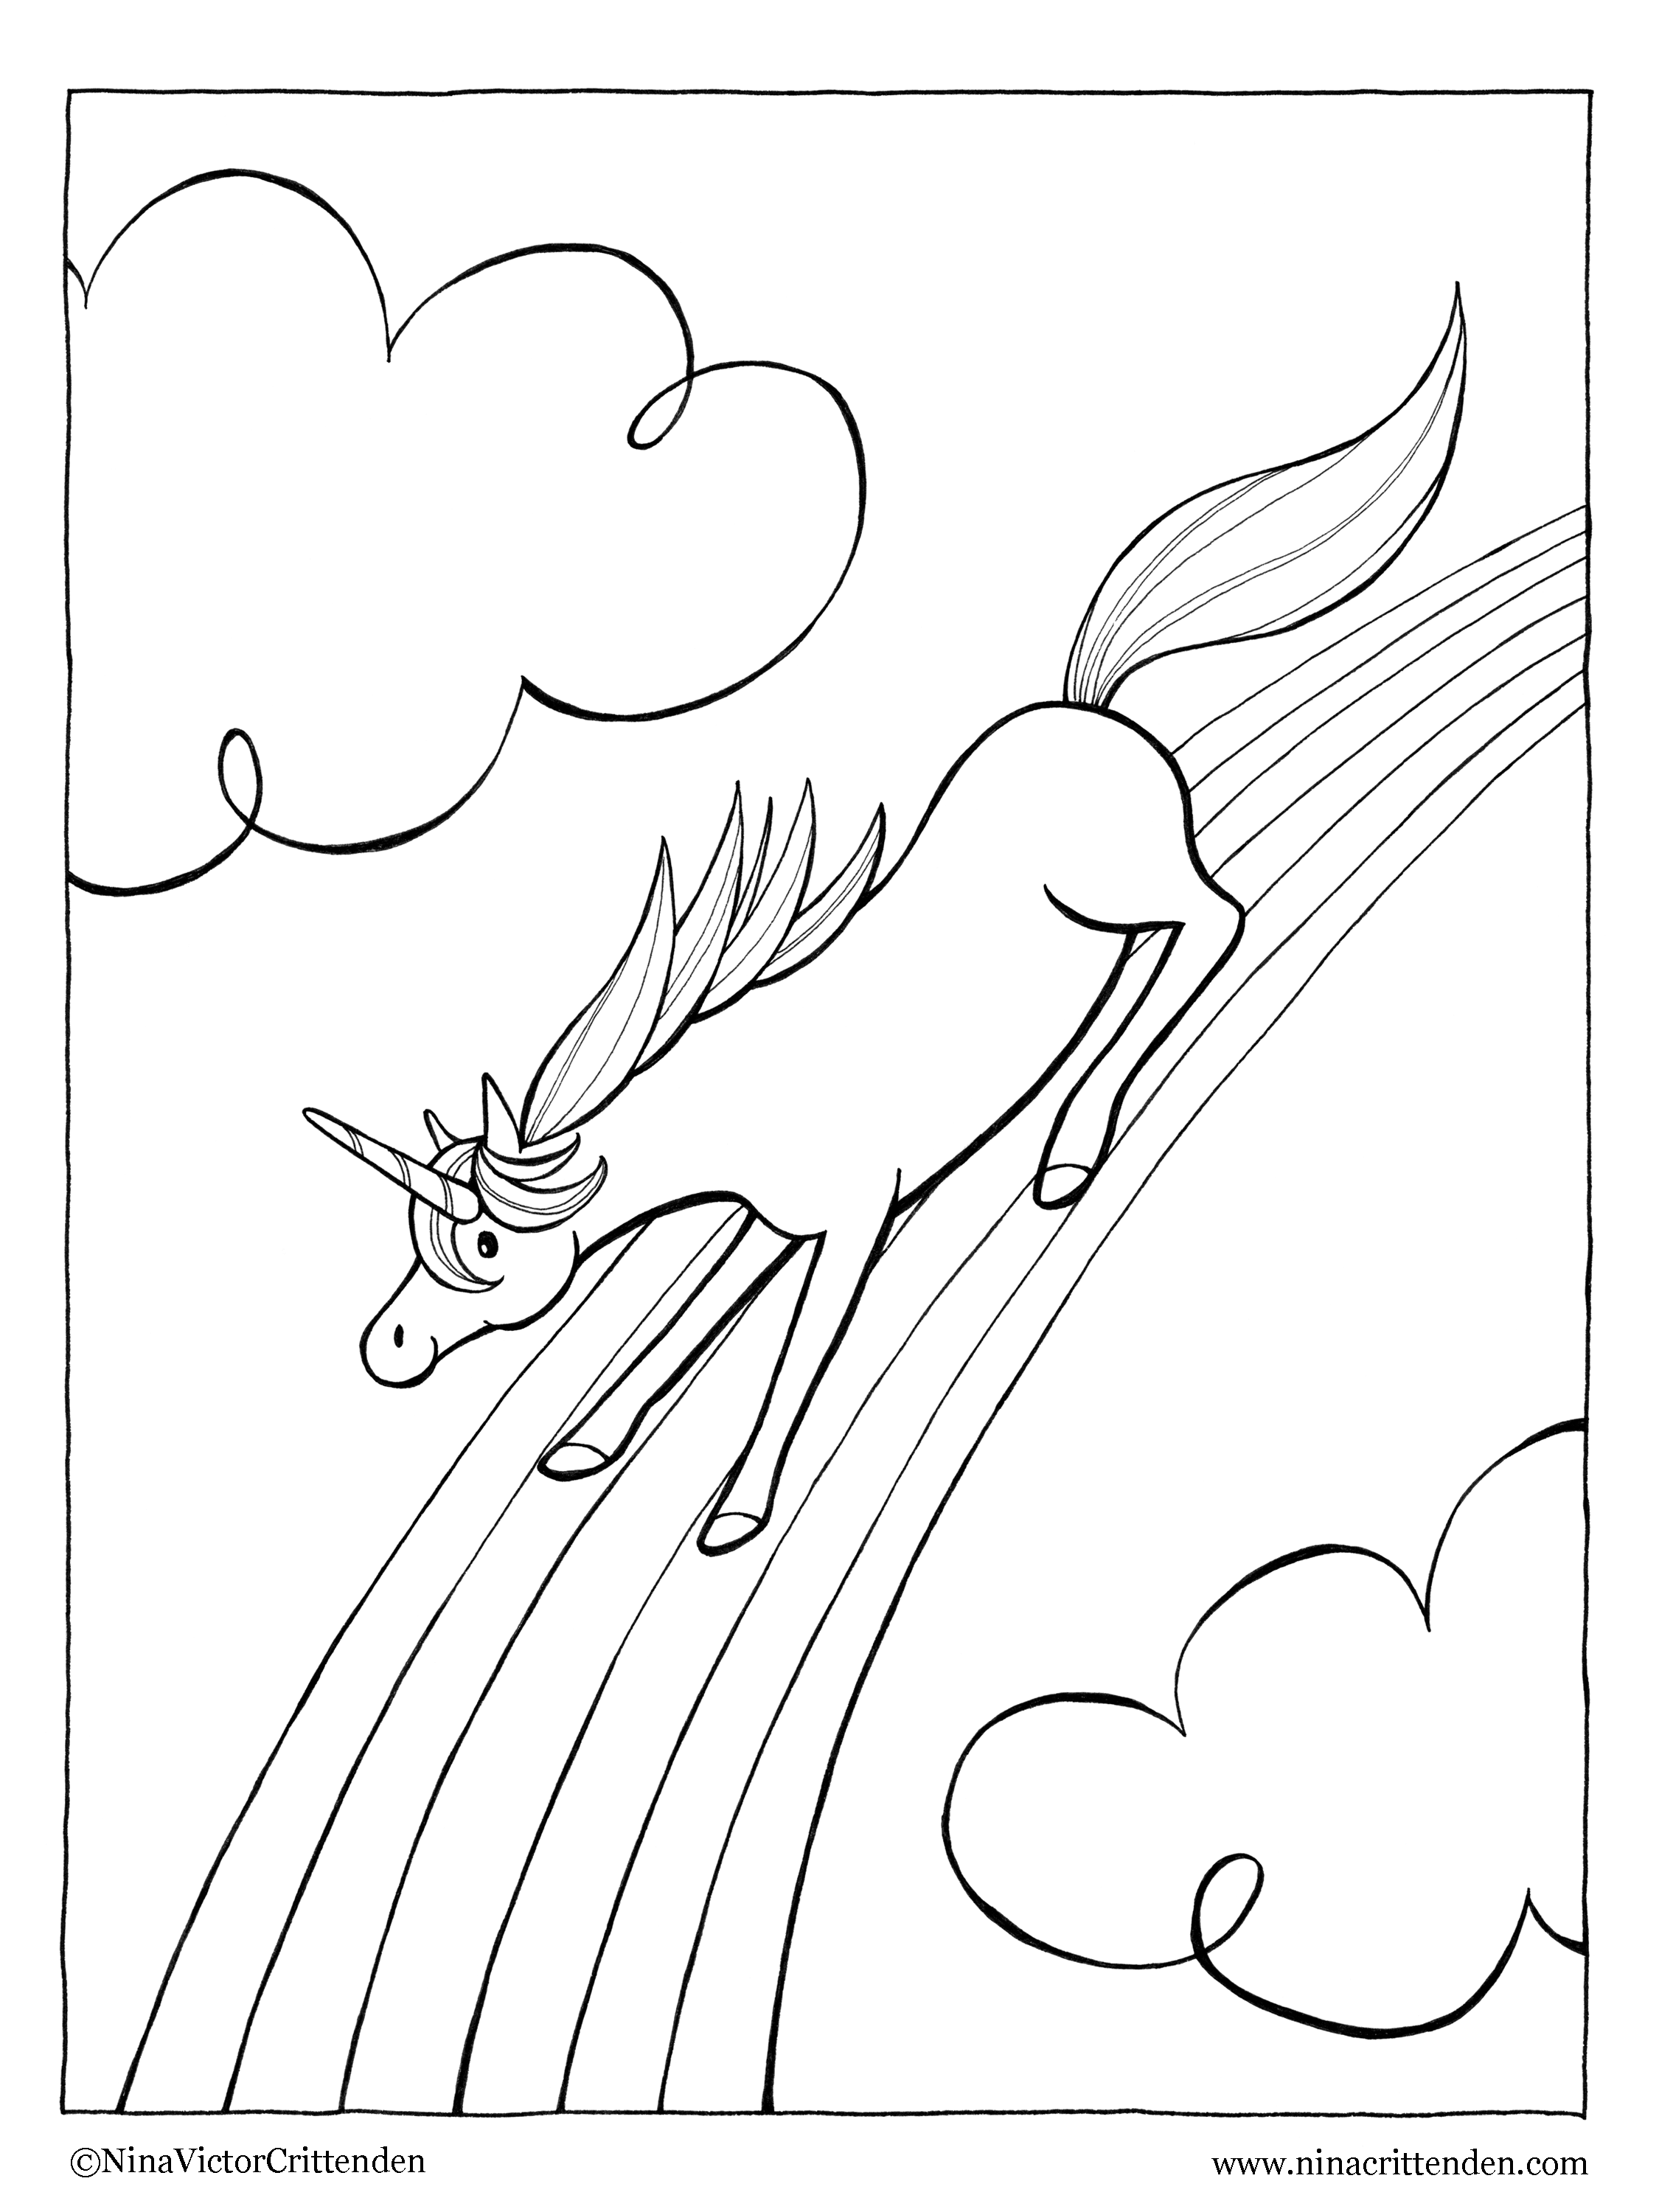 Coloring pages not print